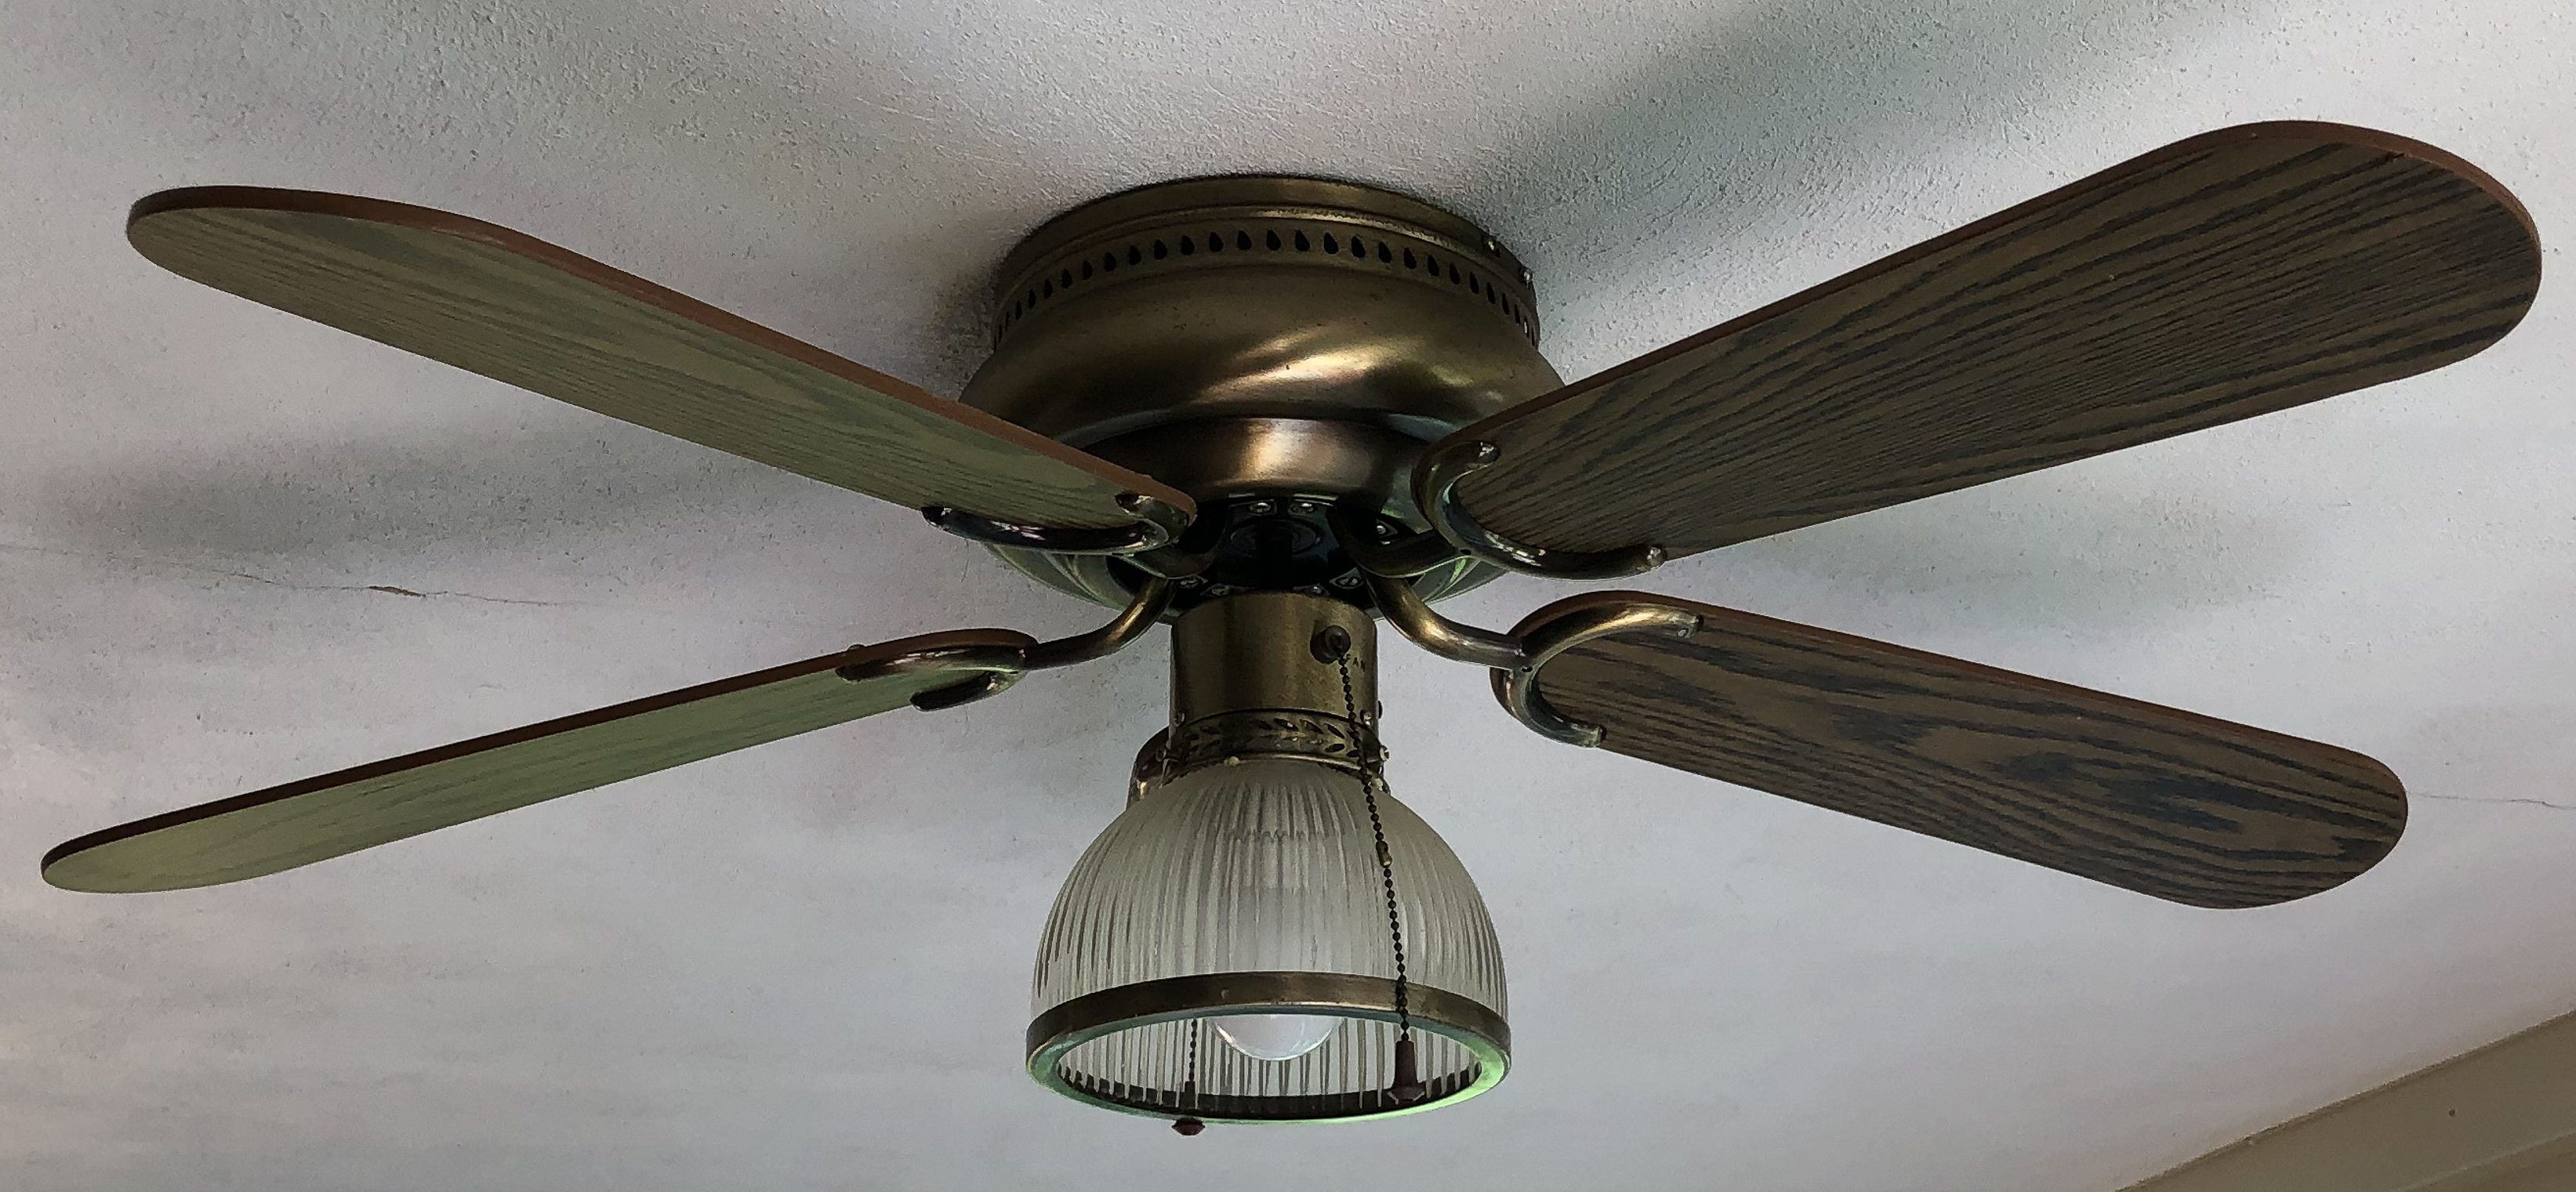 Old and ugly ceiling fan.